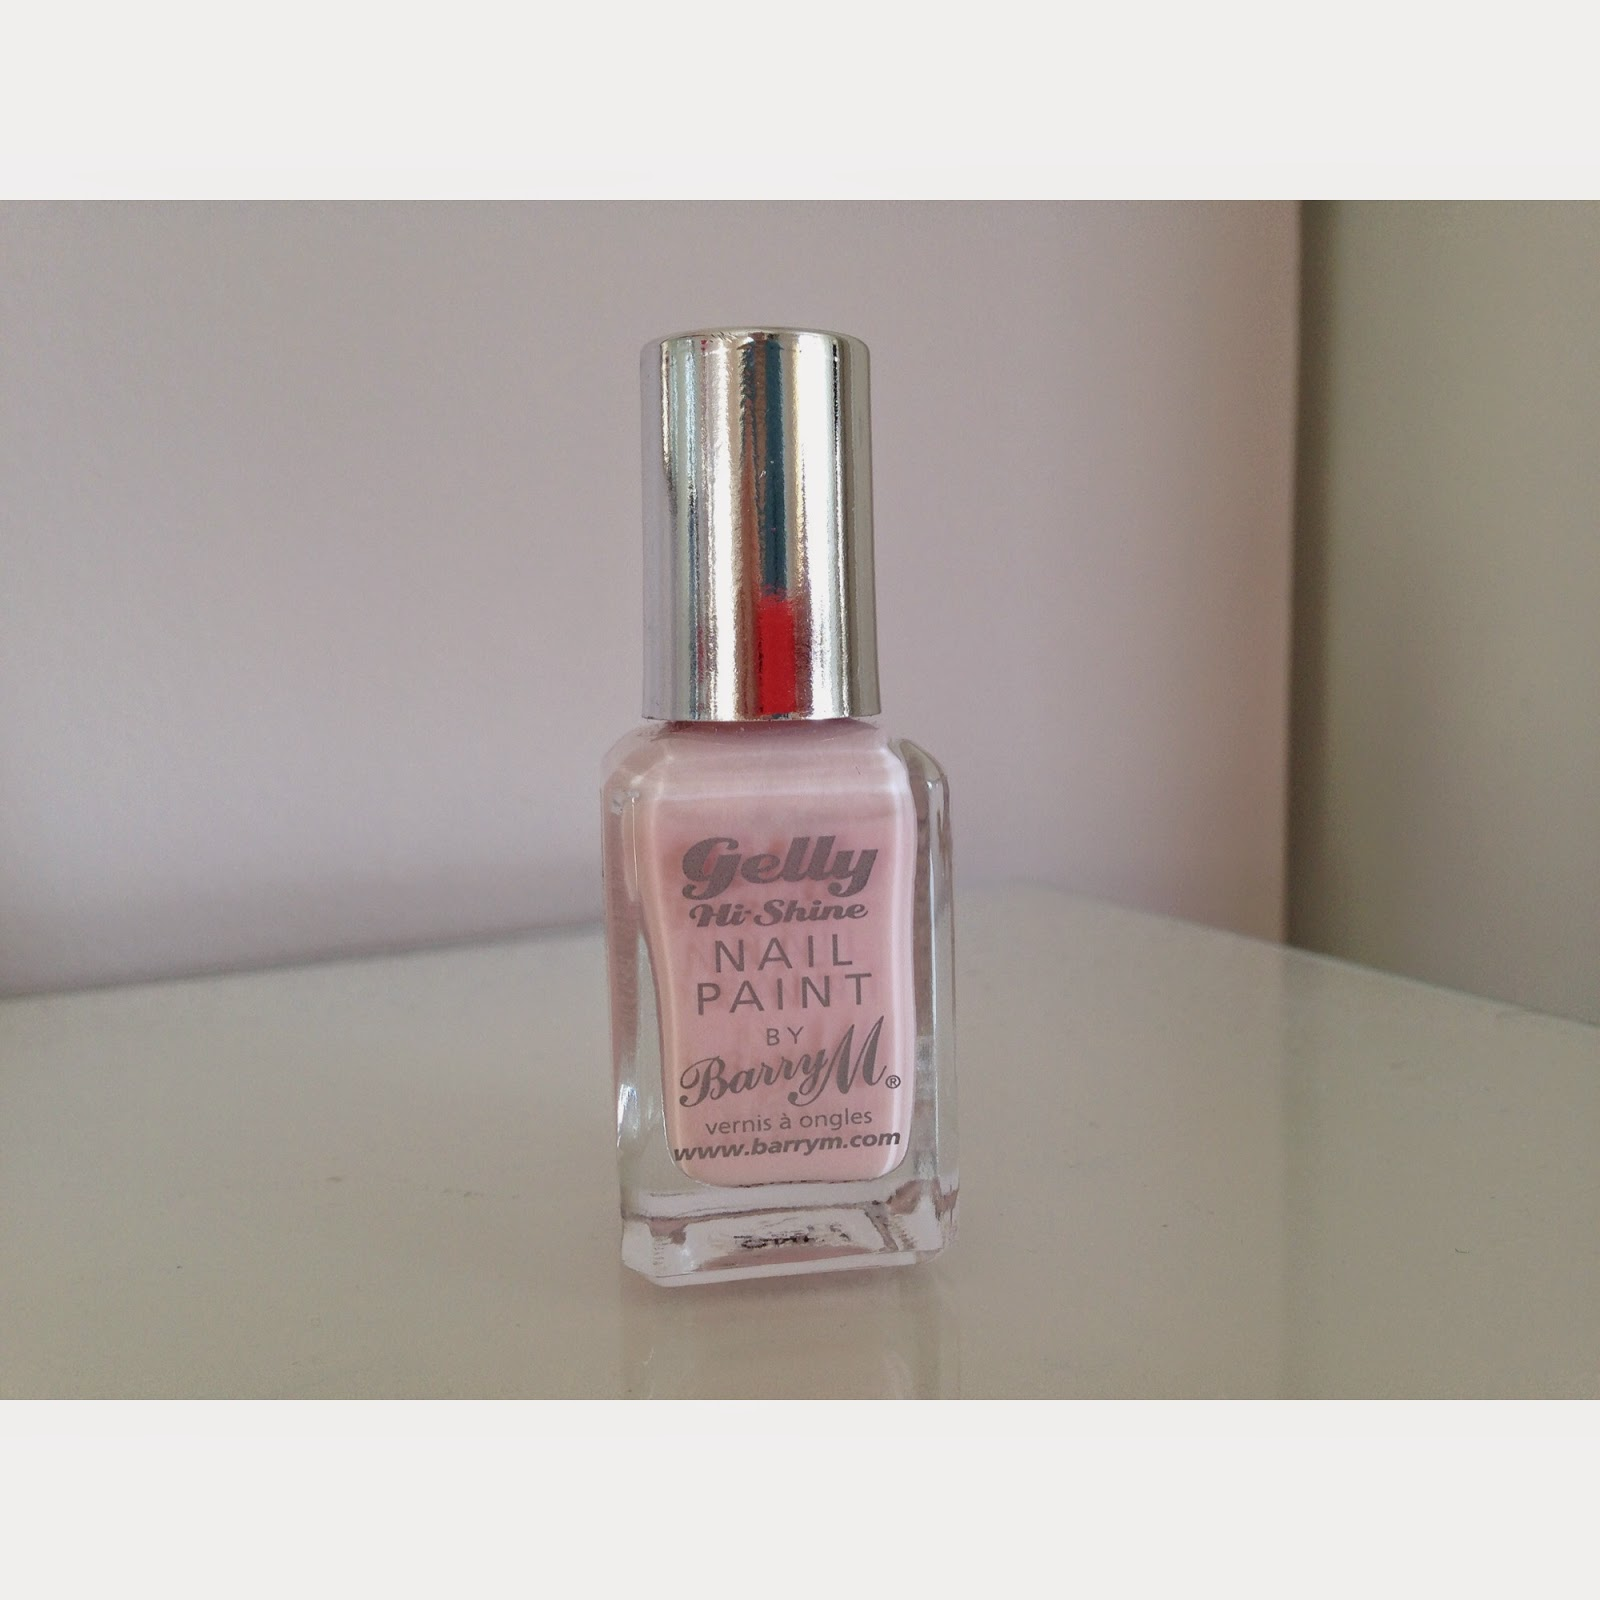 Barry M gelly nail polish (pale pink)